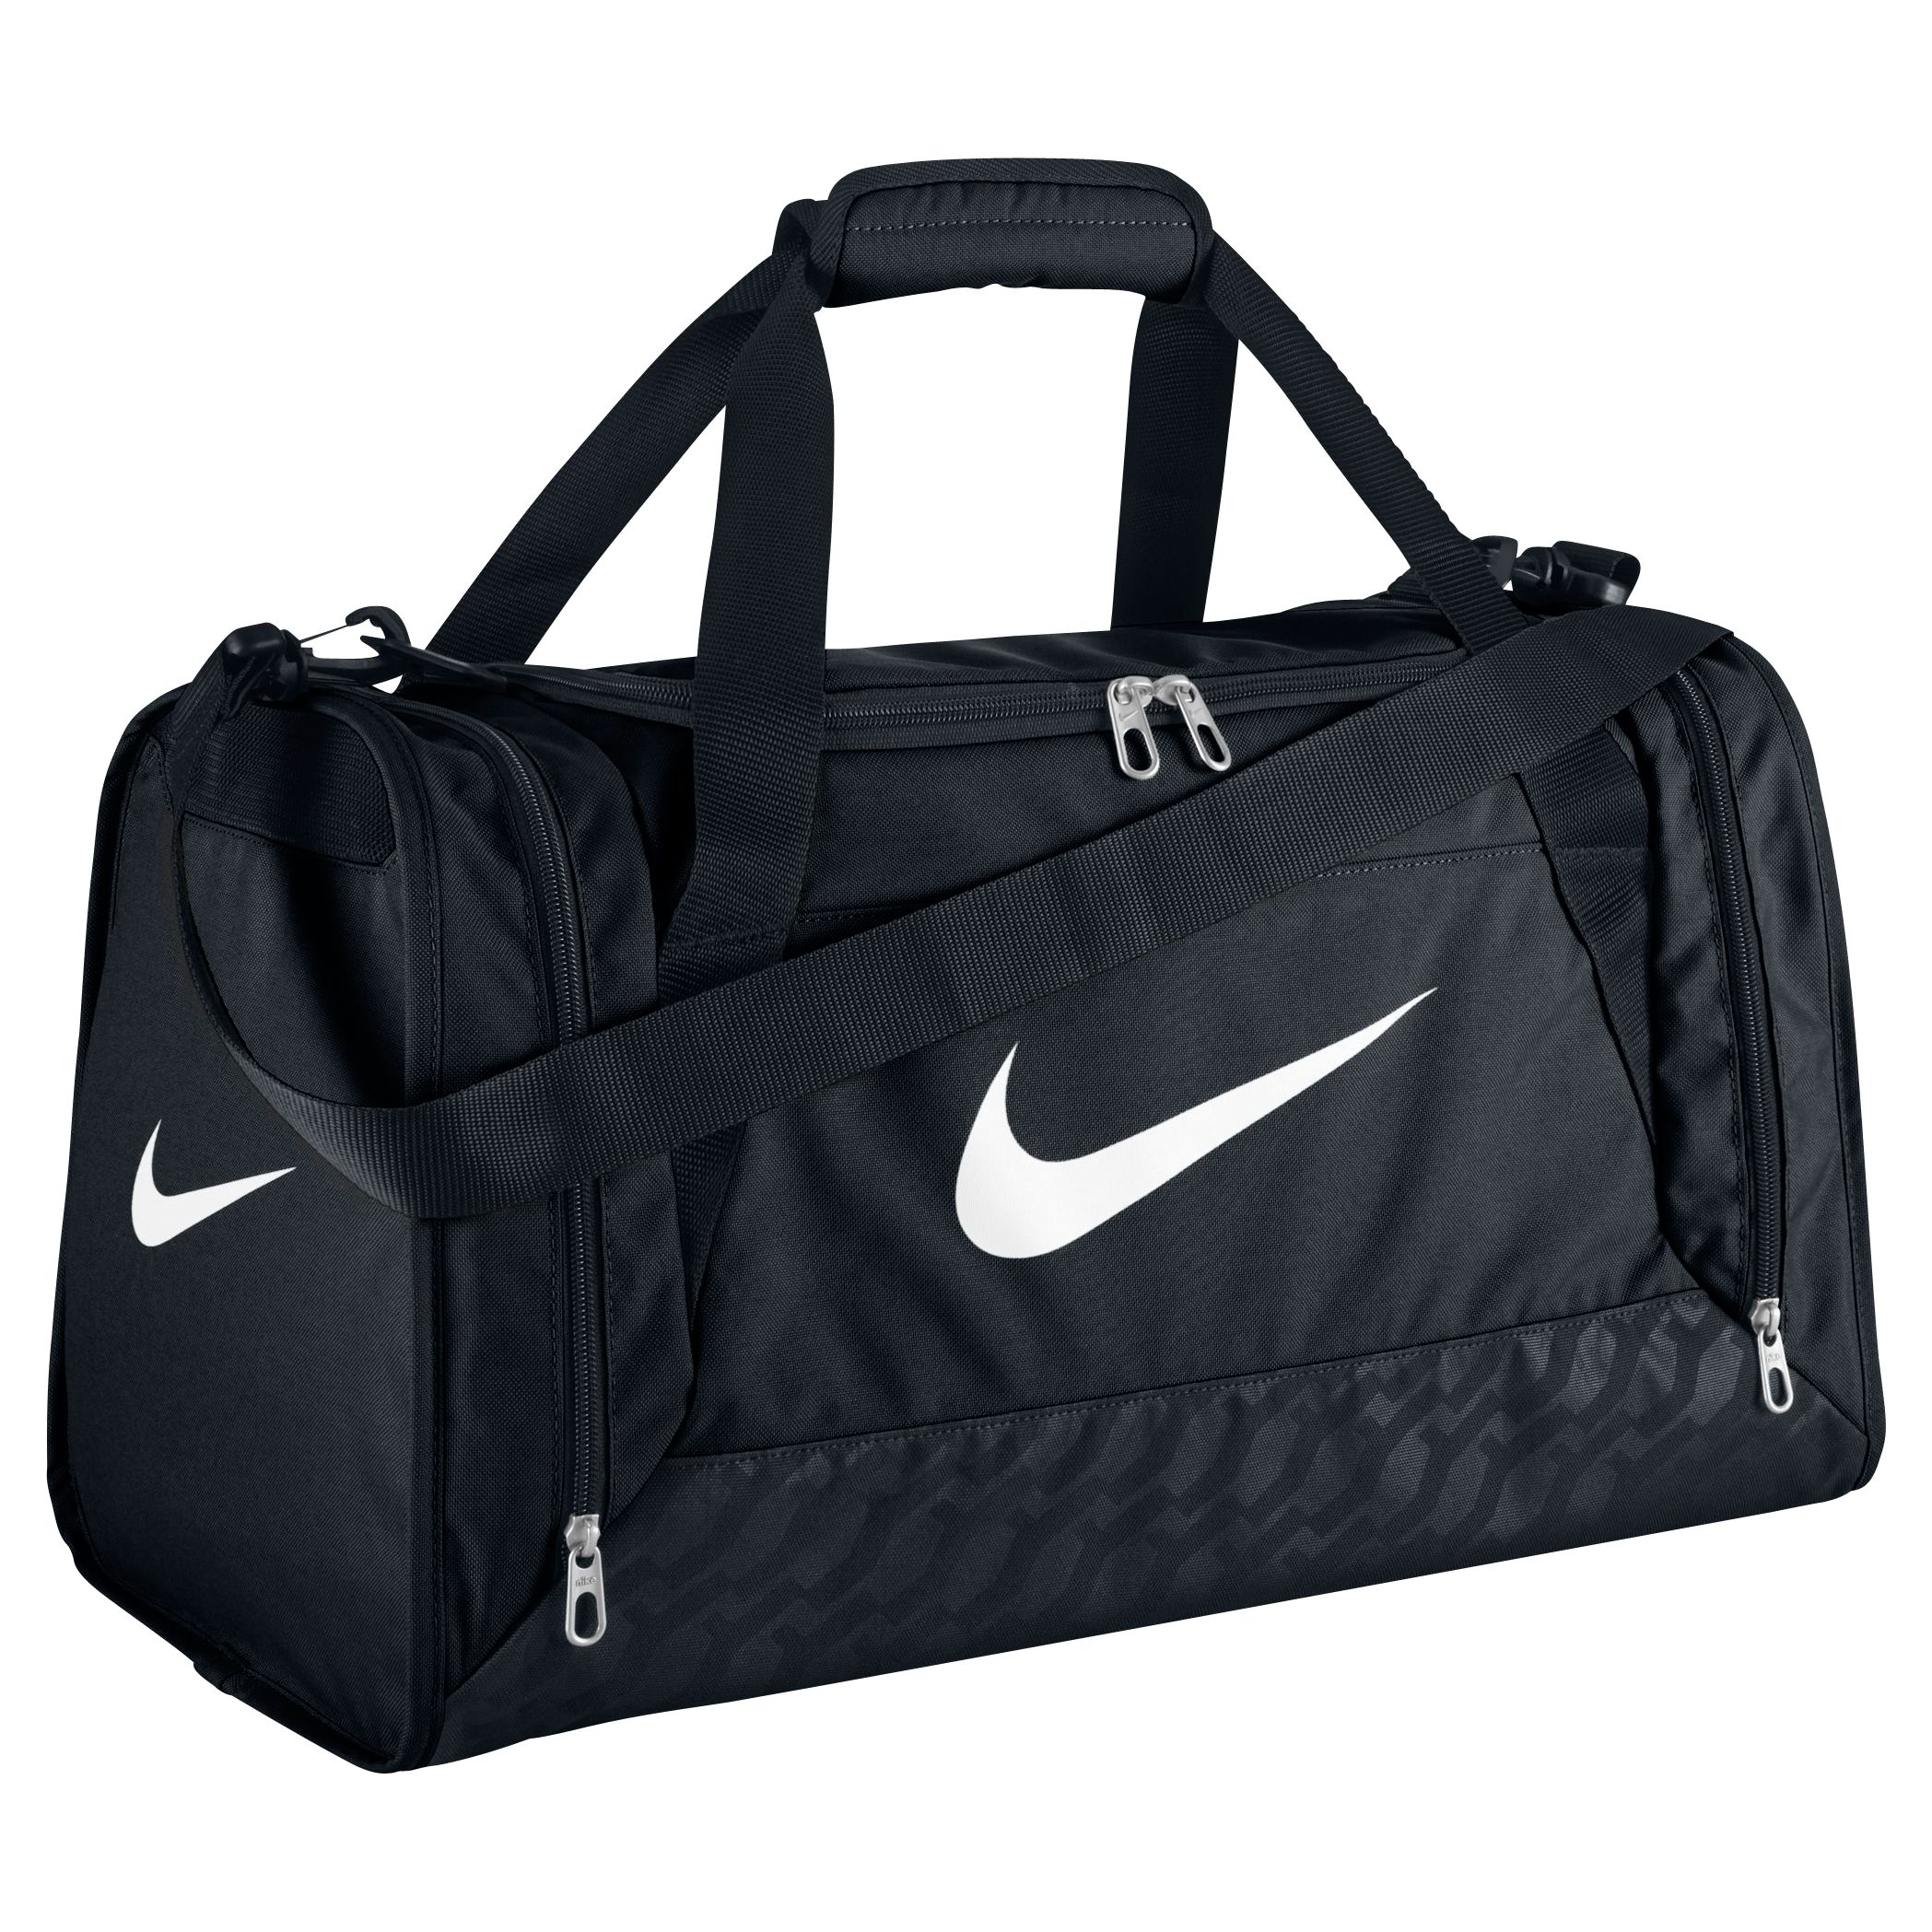 tratar con implícito Collar  Nike Brasilia 6 Small Duffle Bag at John Lewis & Partners